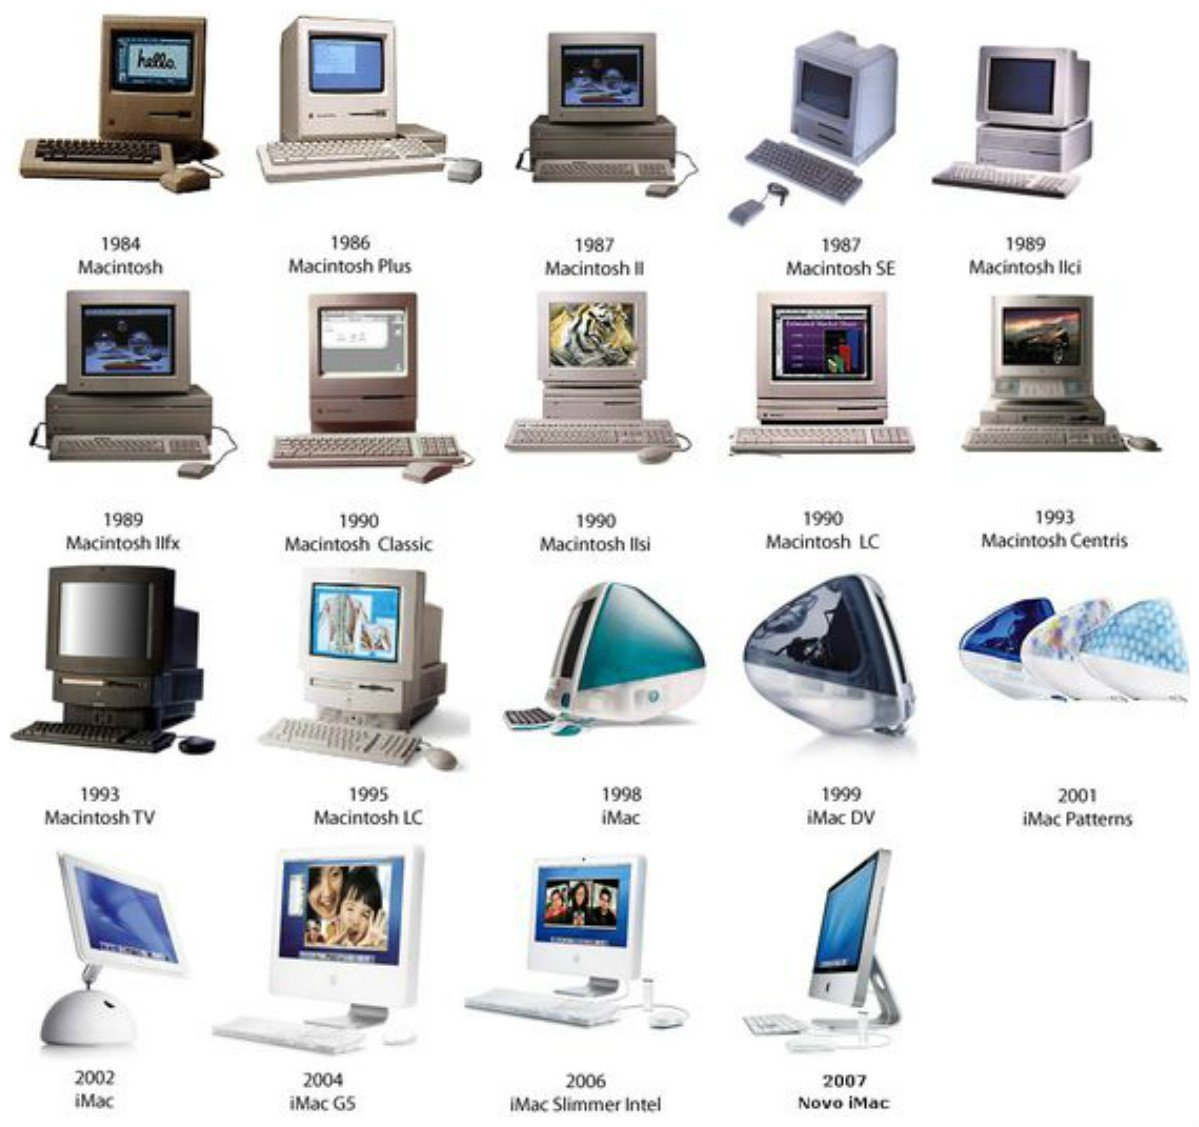 an analysis of the evolution of the personal computer and microsoft The term pc has been traditionally used to describe an ibm-compatible personal computer in contradistinction to an apple macintosh computer the distinction is both technical and cultural and harkens back to the early years of personal computers, when ibm and apple were the two major competitors.